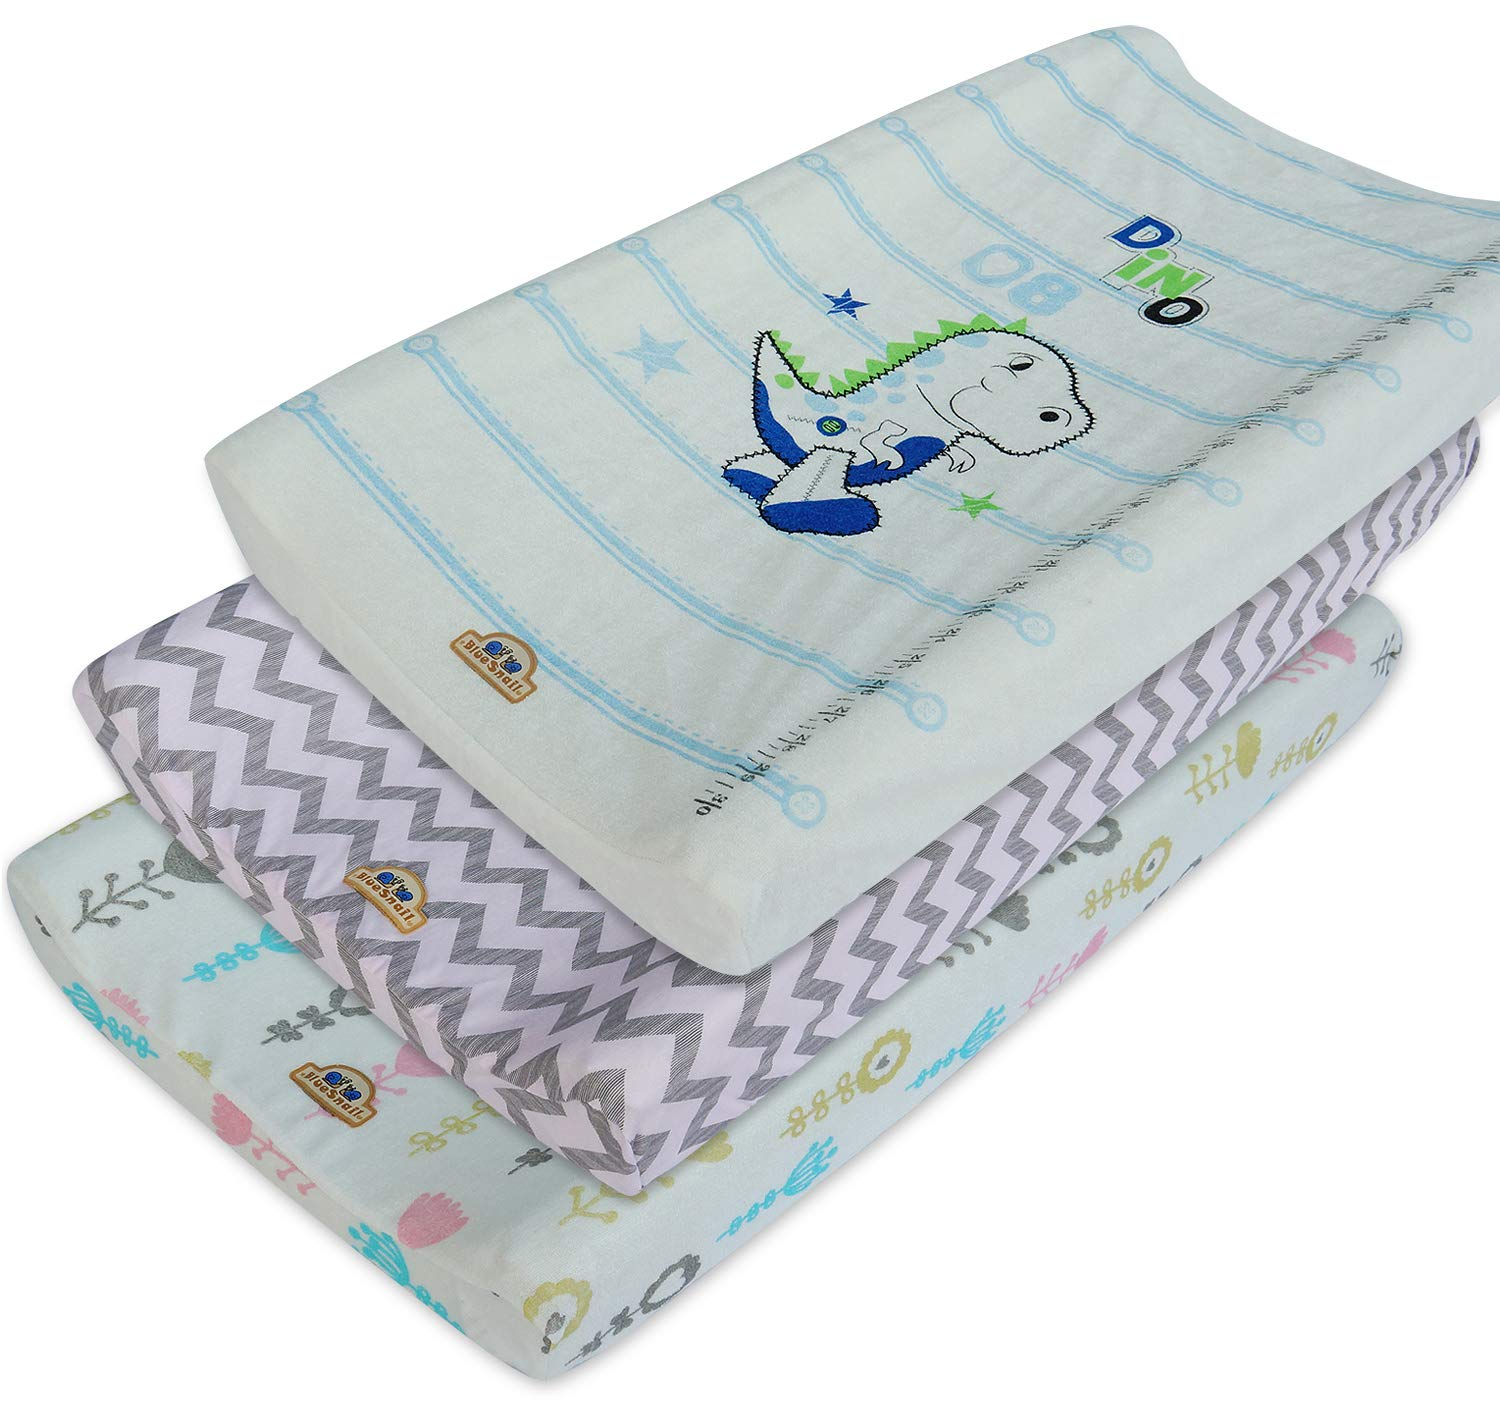 Ultra Soft and Comfty Changing Pad Cover 3pk by BlueSnail (Blue Set) BlueSnial